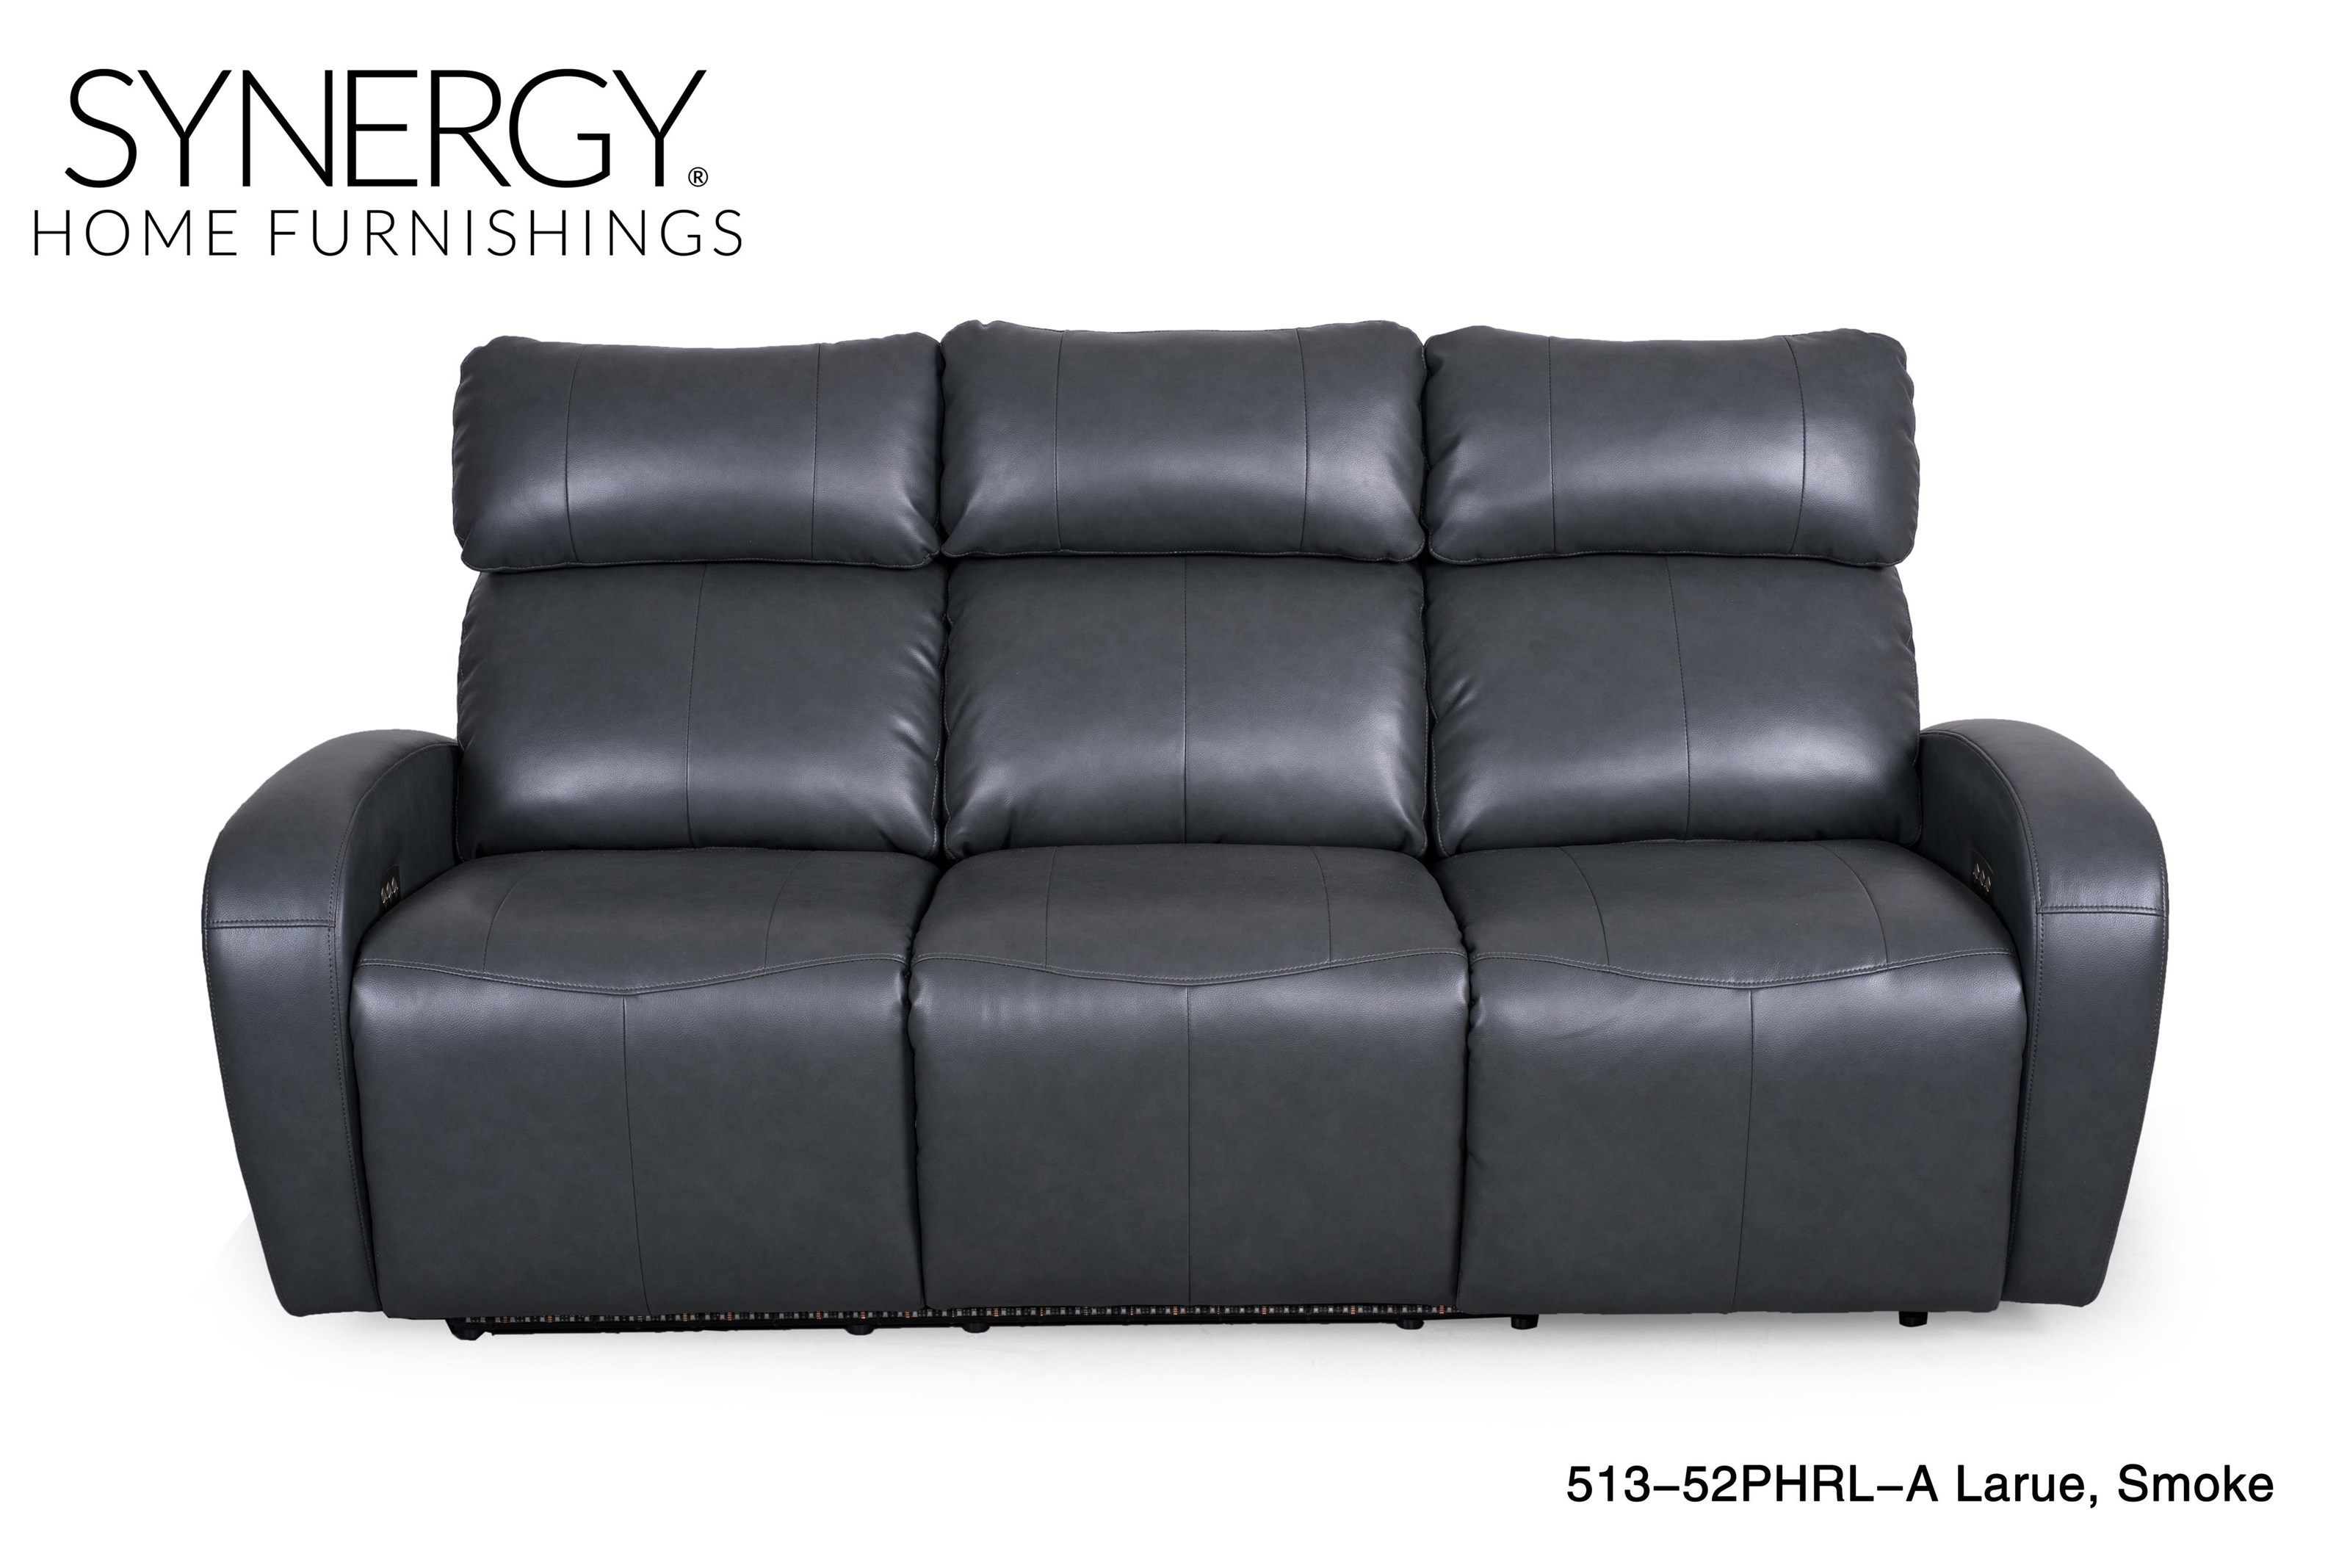 Synergy Home Furnishings 513 Power Reclining Sofa W/Console   Item Number:  513sealsofa